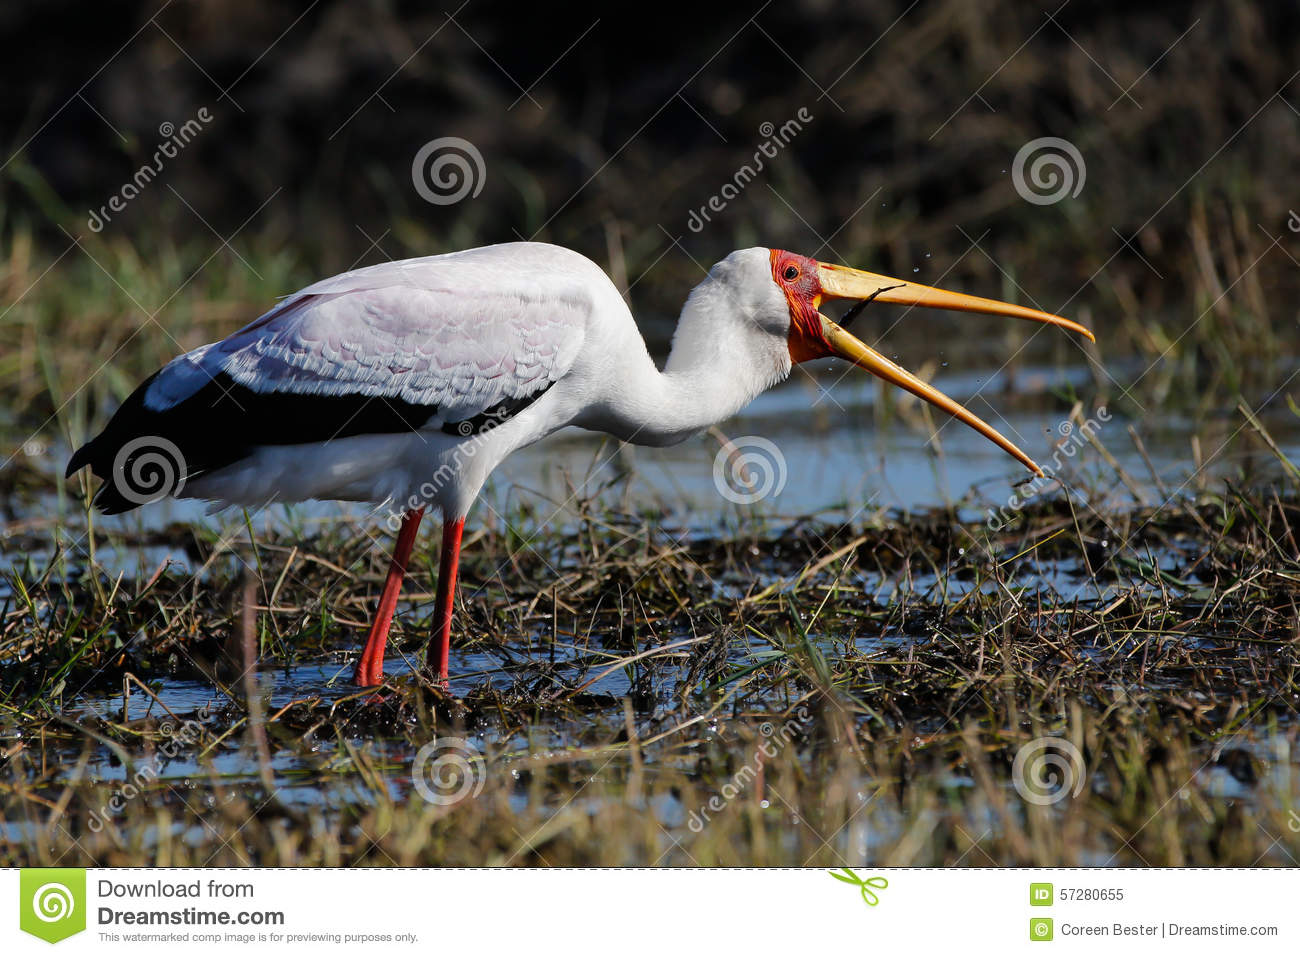 Africa Wild Bird Coming To Land Stock Photo - Image: 57280655